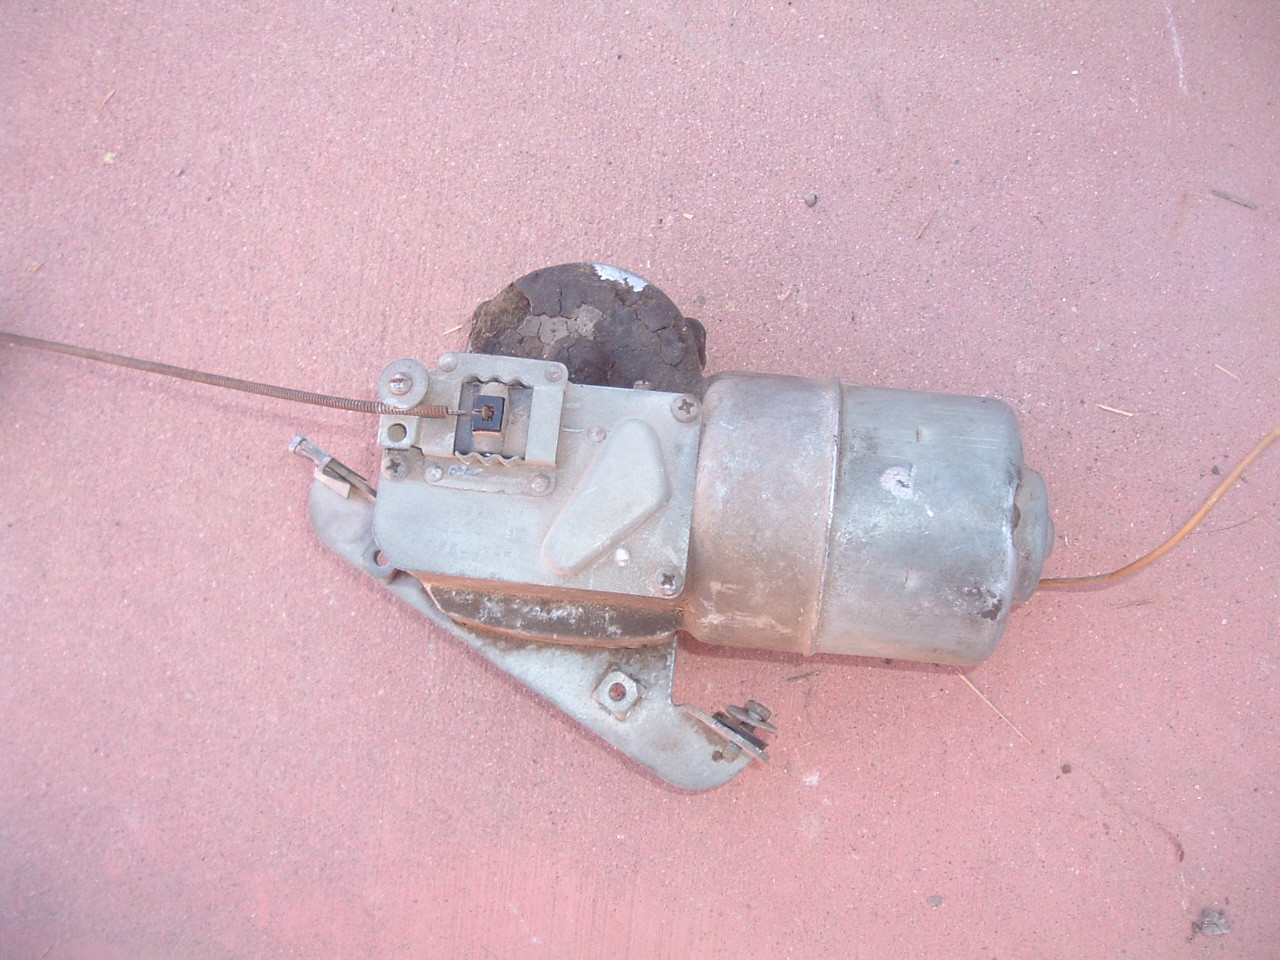 1953 1954 Chevrolet truck electric windshield wiper motor original GM 6 VT # 5047765 (z 5047765)